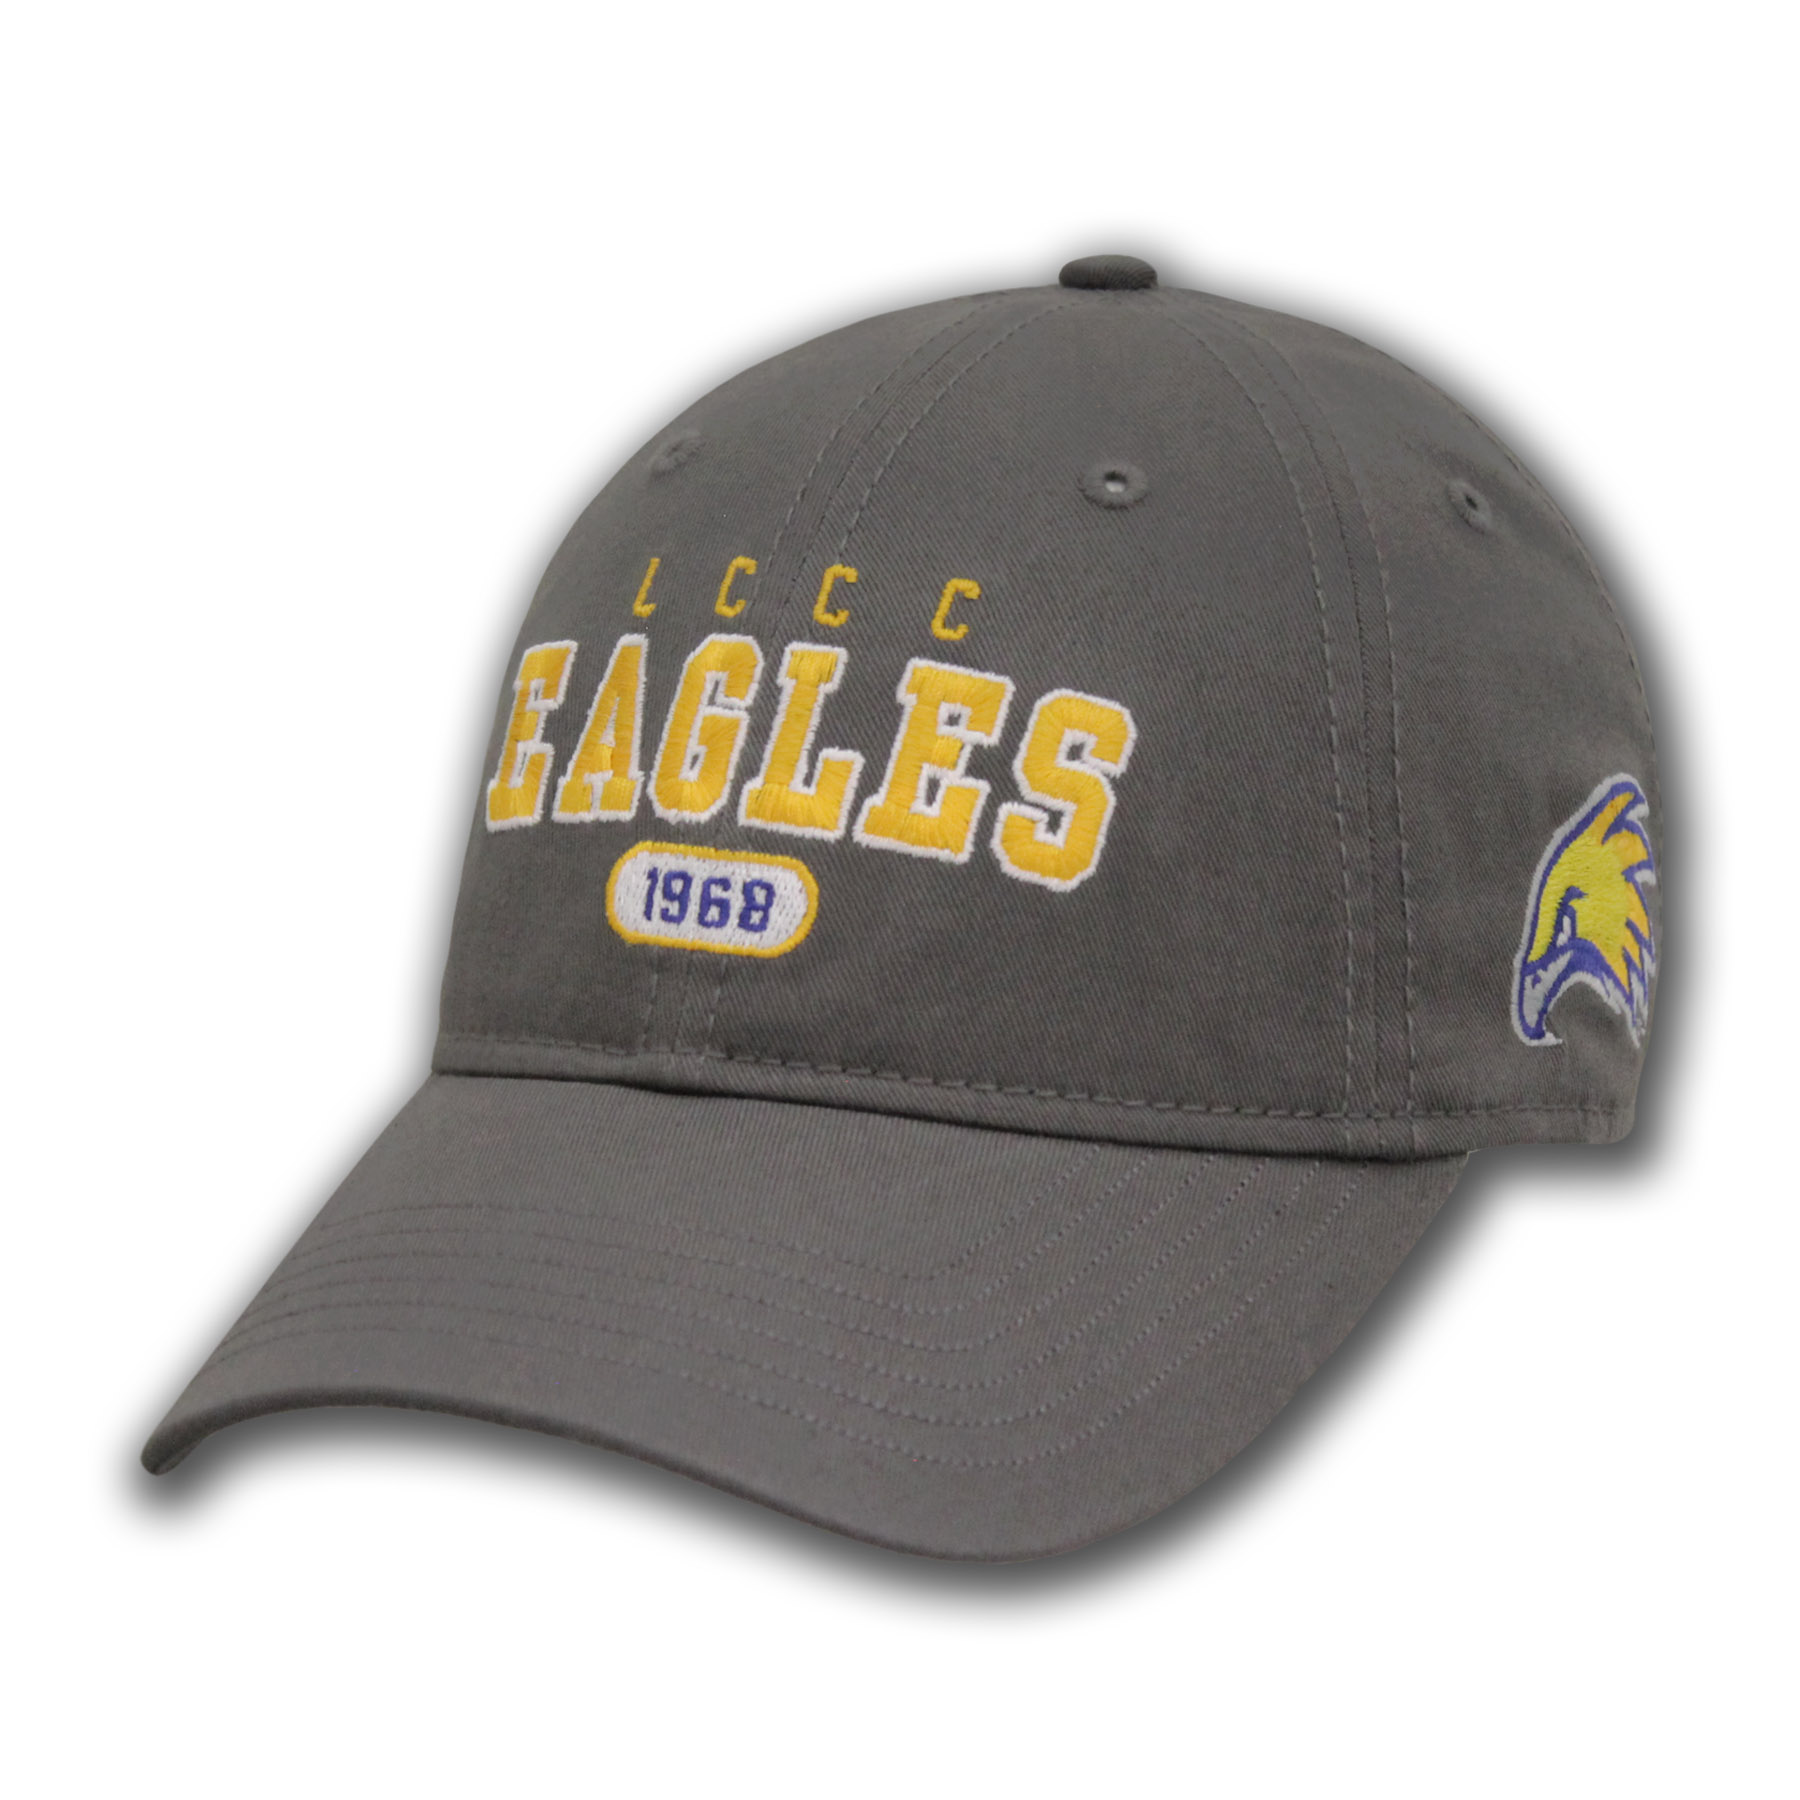 LCCC Eagles Twill Hat